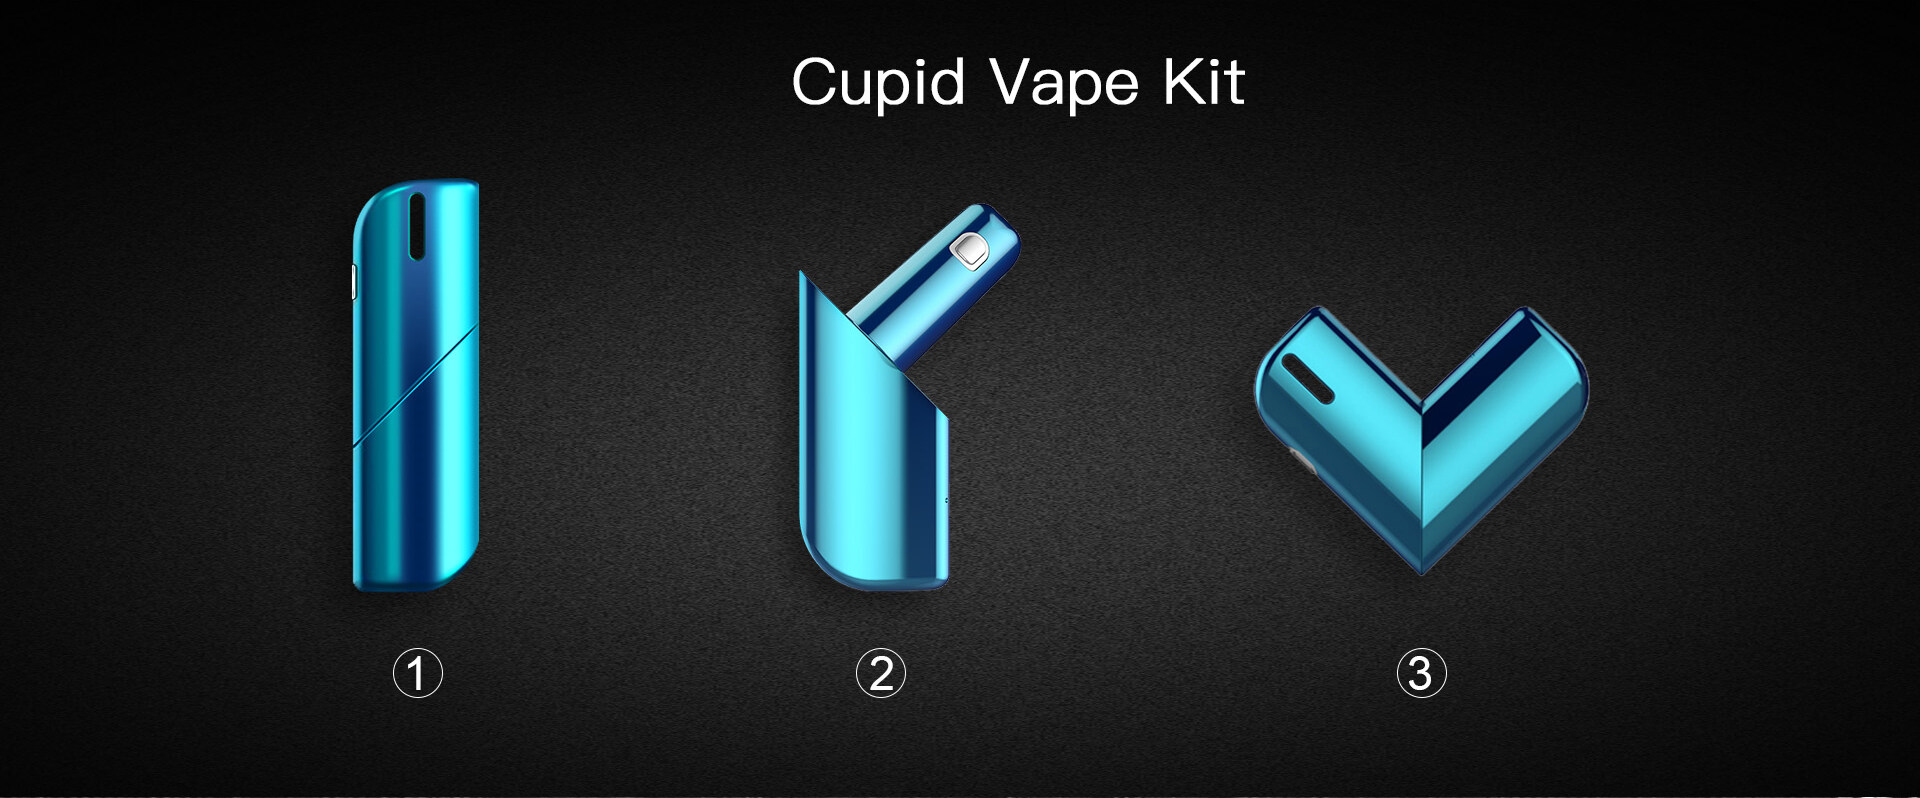 Cupid Vape Kit